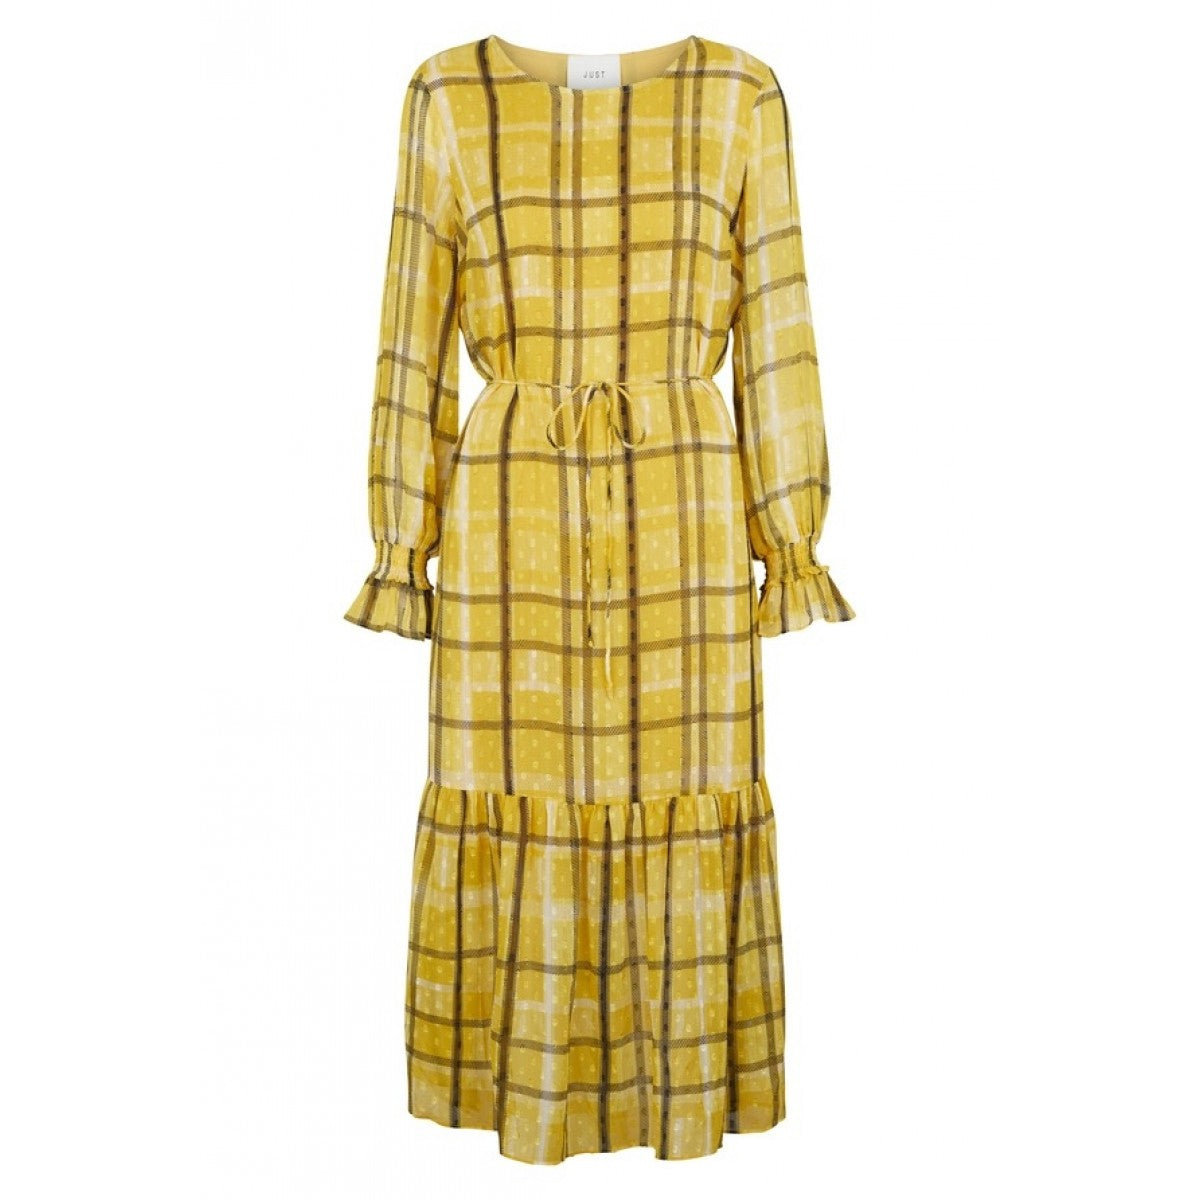 Chinie Dress in Yellow